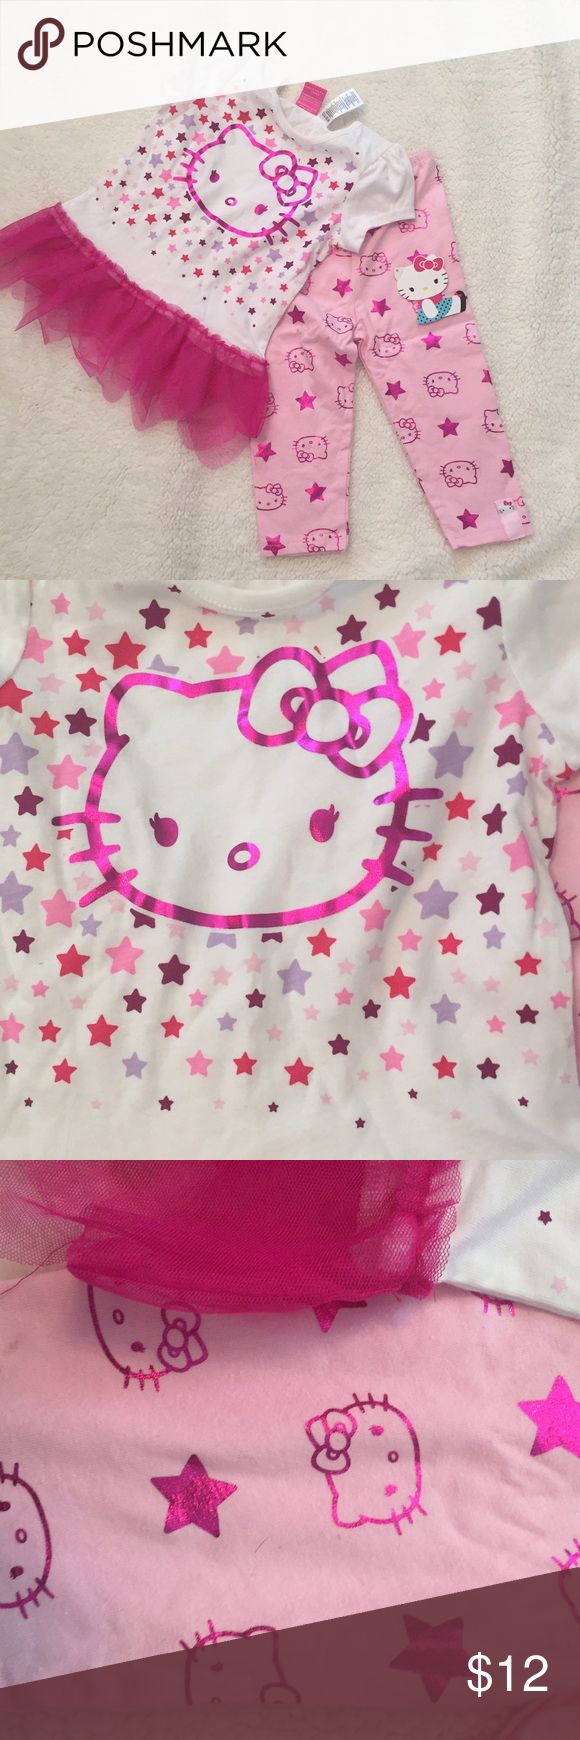 Hello Kitty 2 Piece pants set Size 4T Hello kitty outfit Long pants Short sleeve top Tulle  trim Size 4 t New with tags 60% cotton 40% polyester Hello Kitty Matching Sets